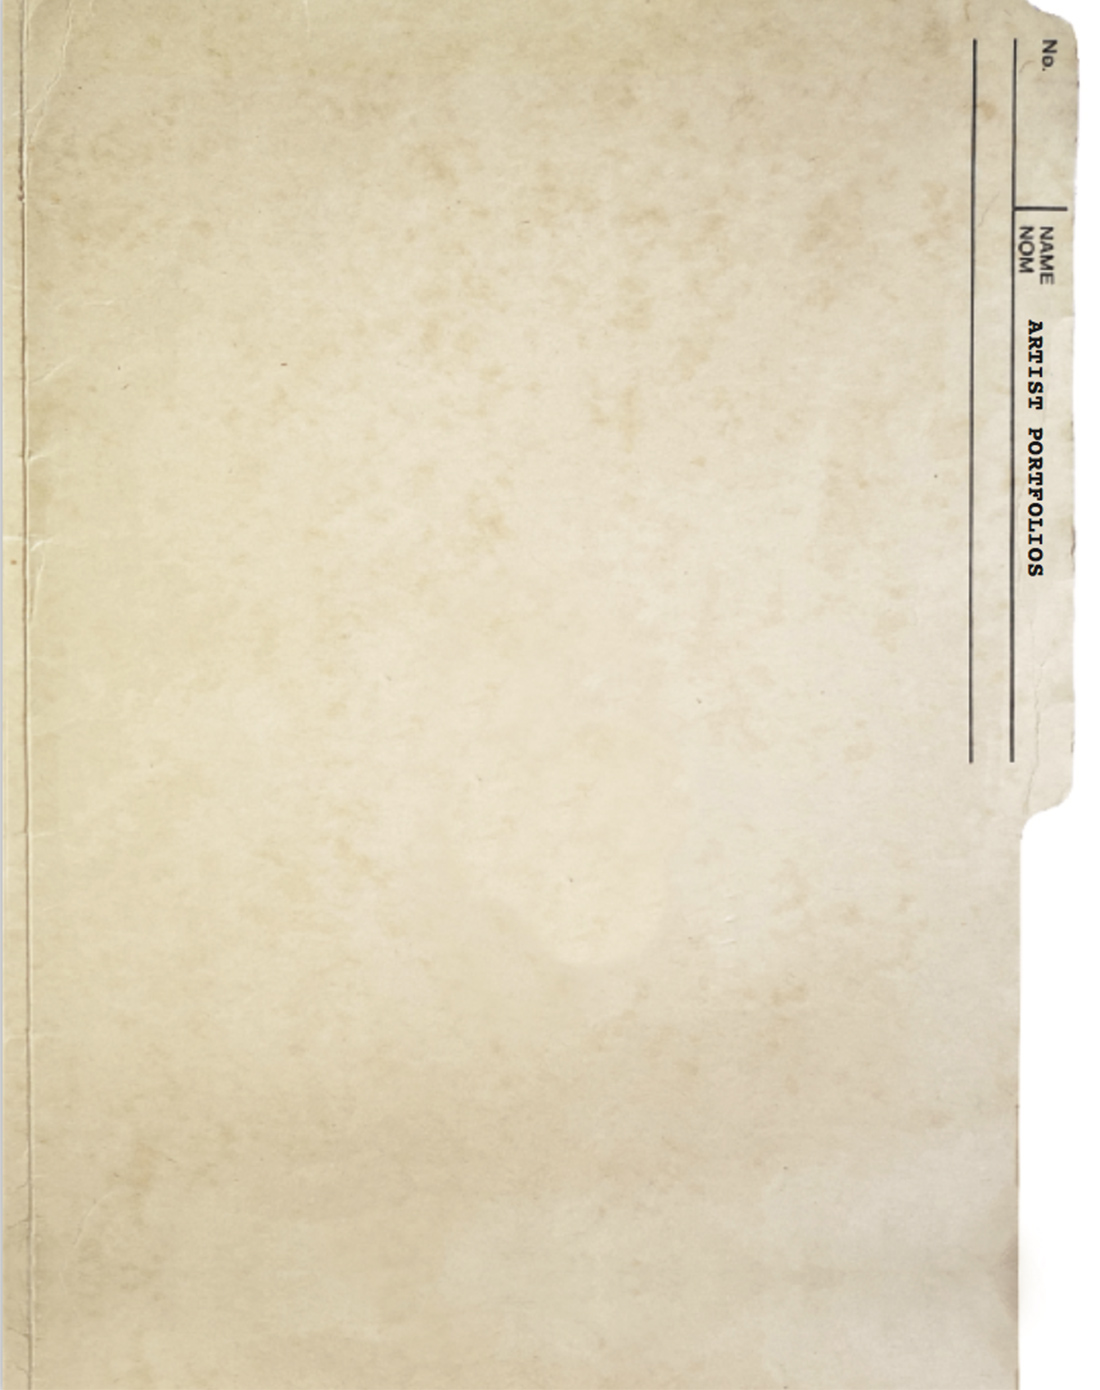 Manila folder marked Artist Portfolios